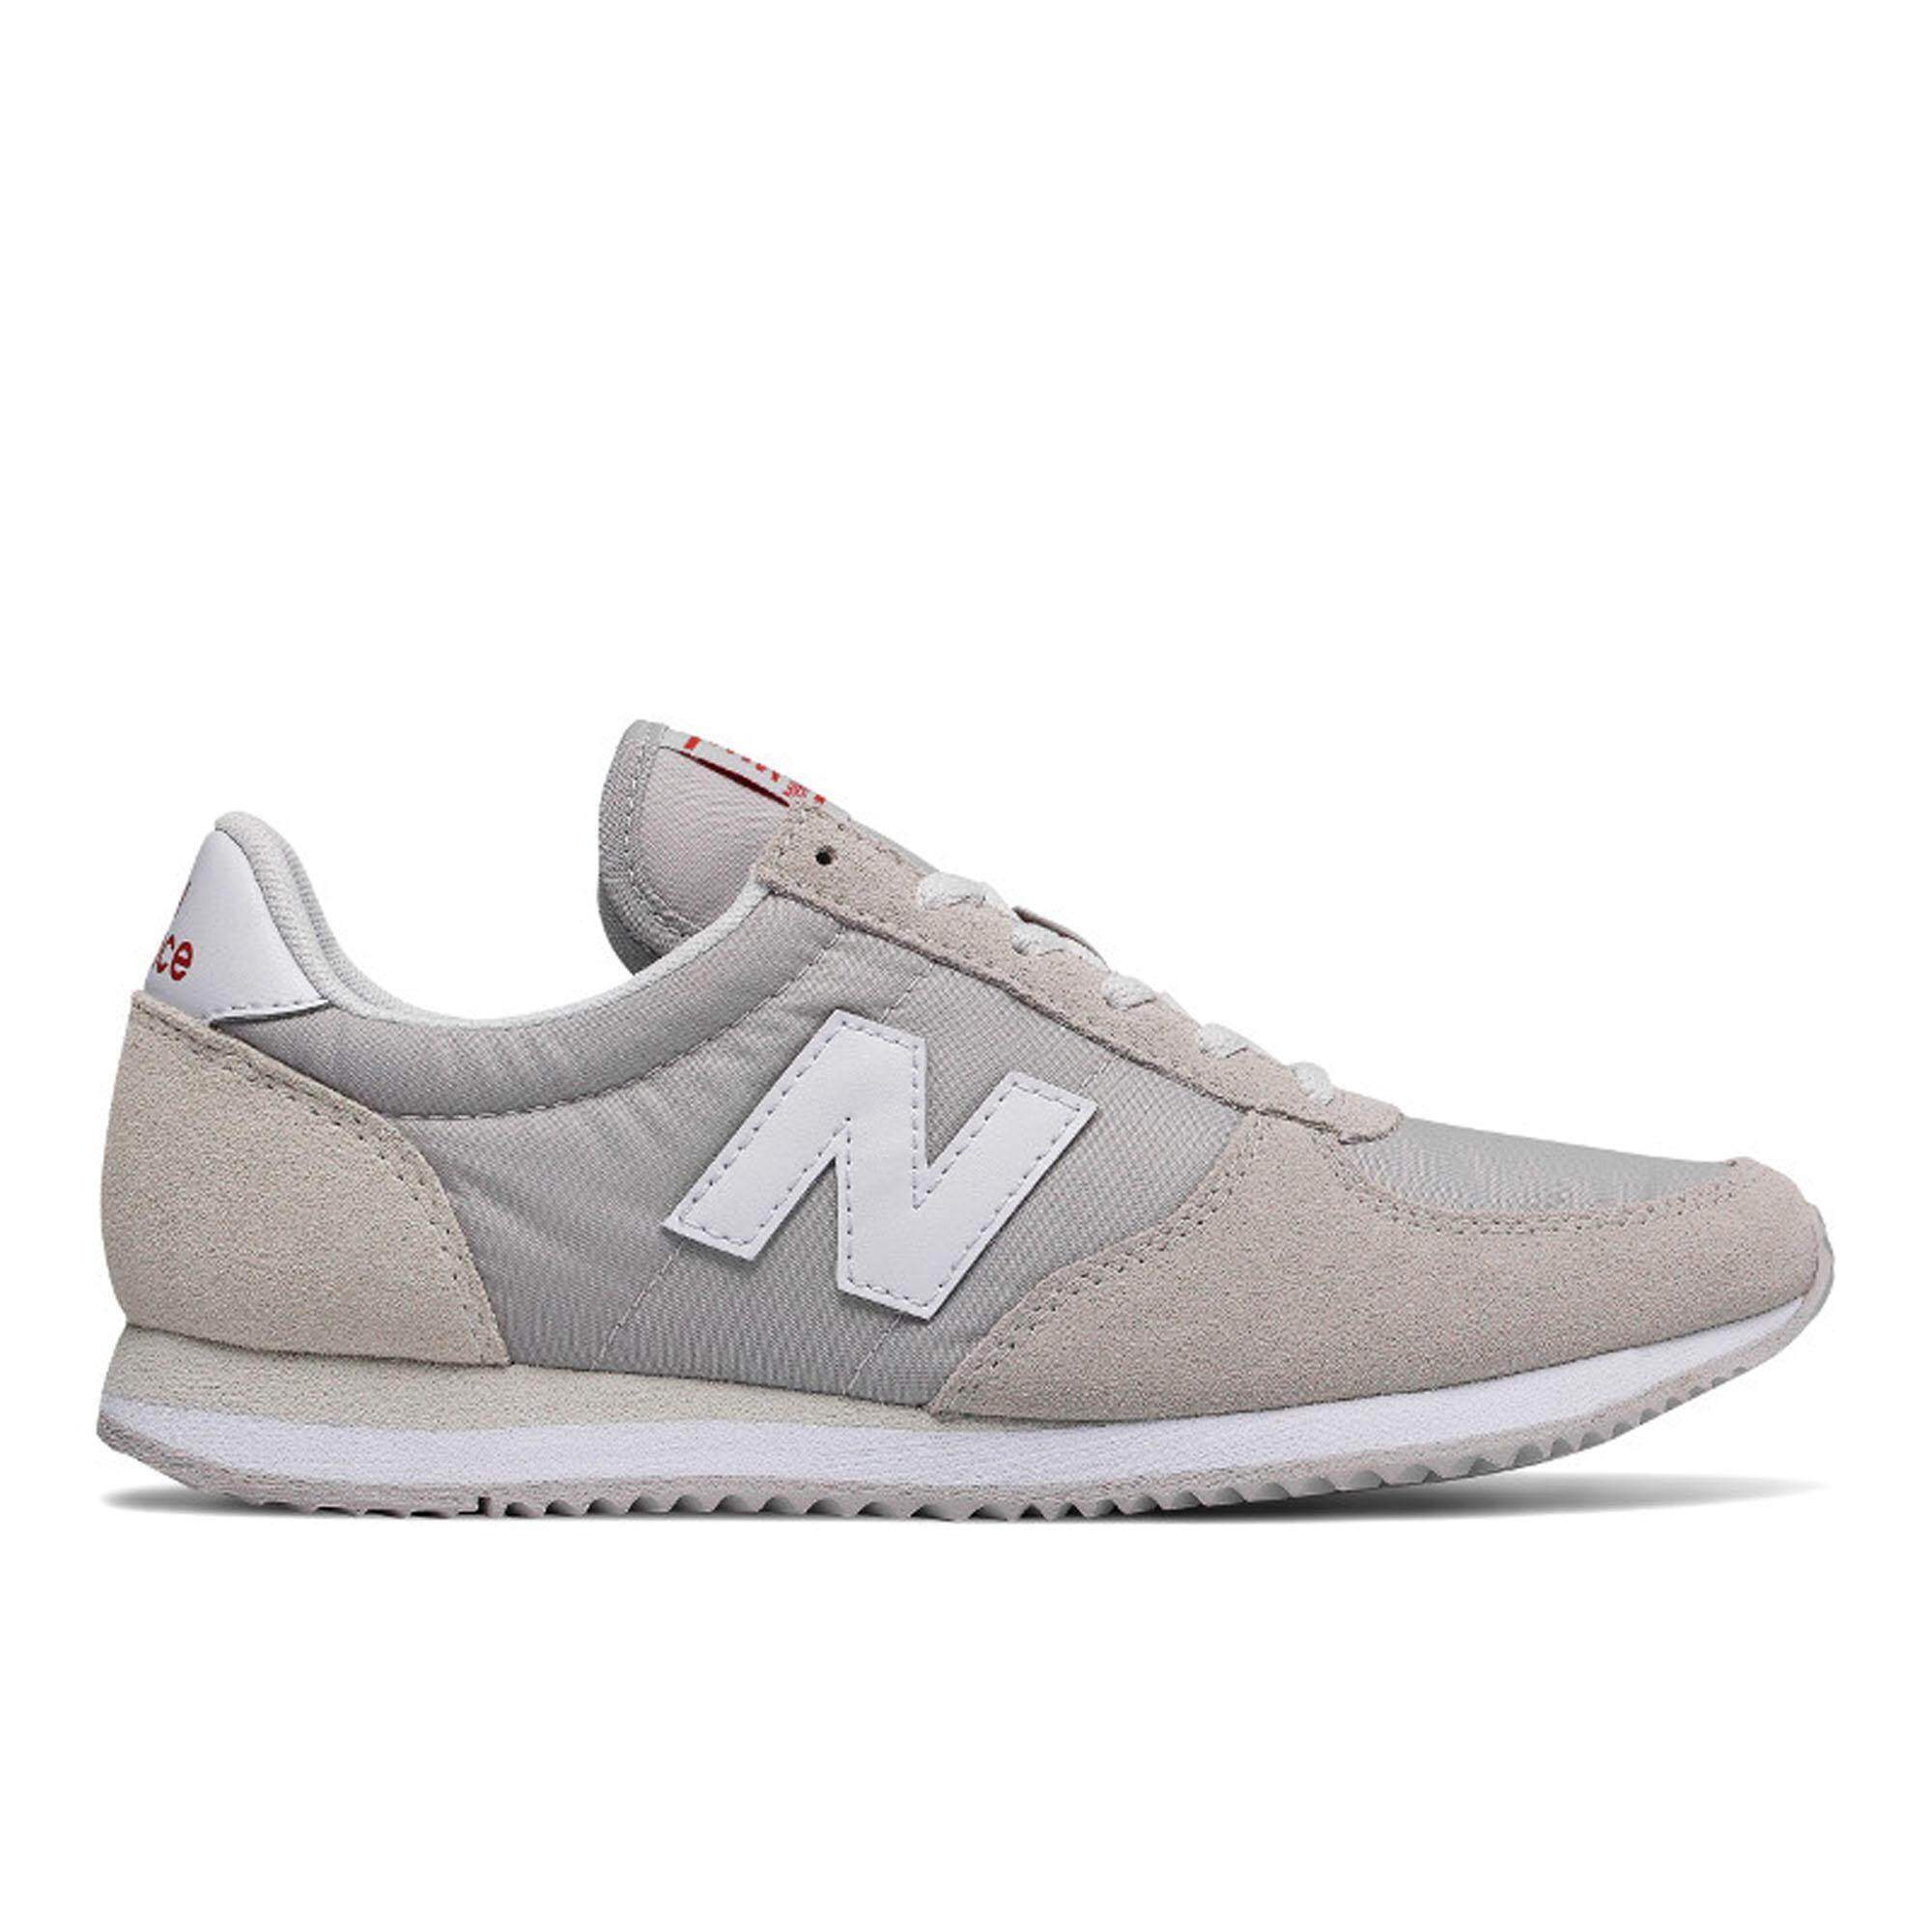 08fd42d7c8 New Balance Women's Lifestyle Shoes - 220 (Grey)